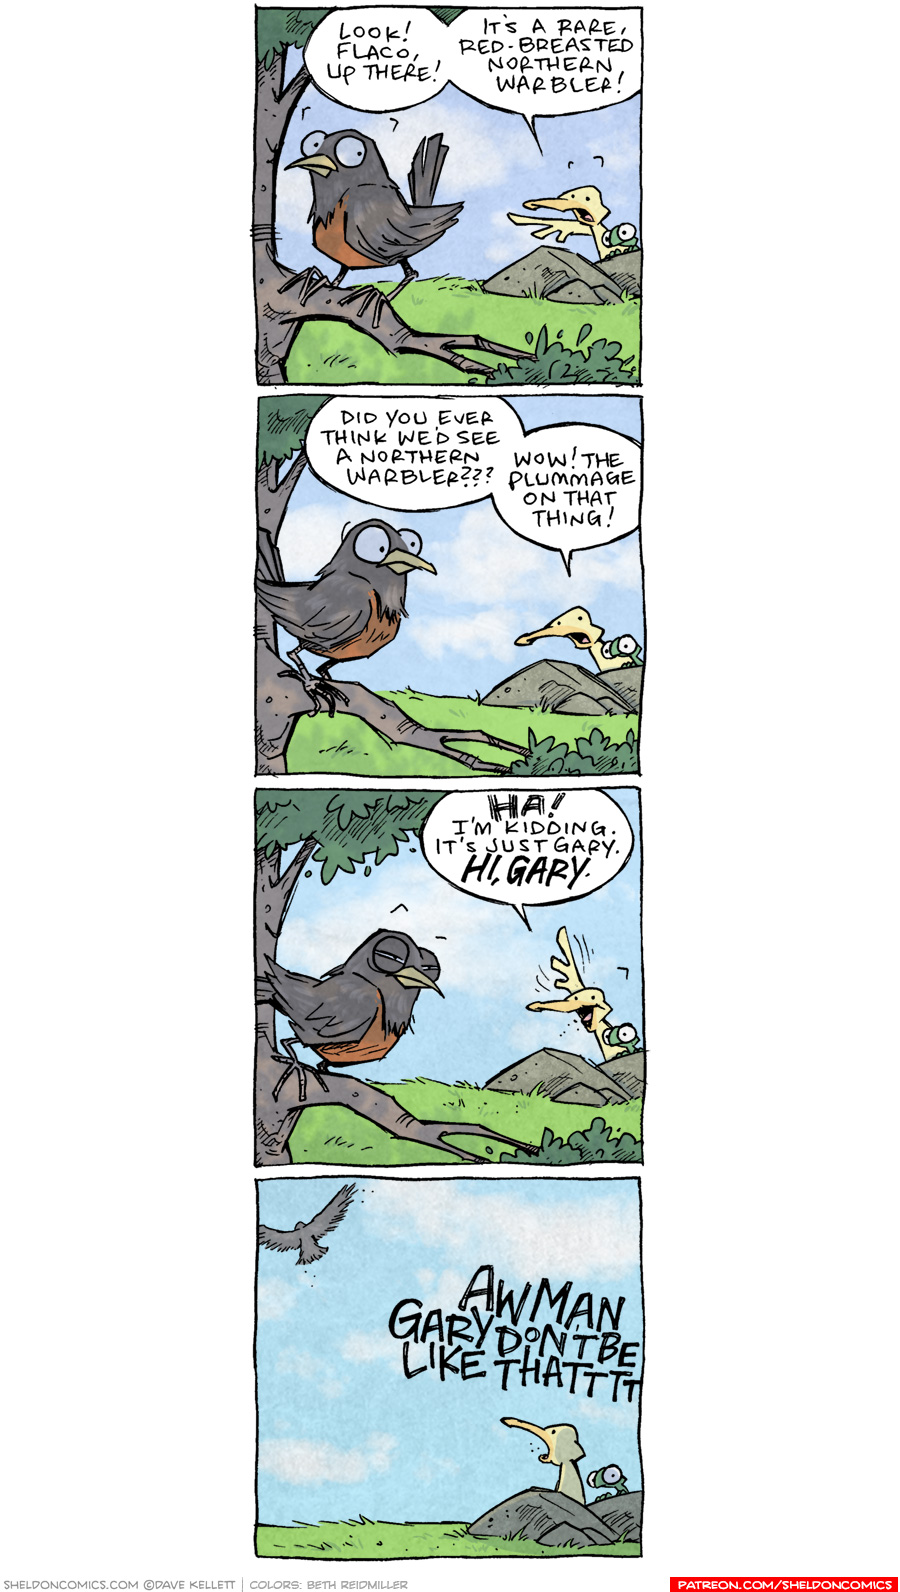 strip for May / 28 / 2020 - Red-Breasted Northern Warbler